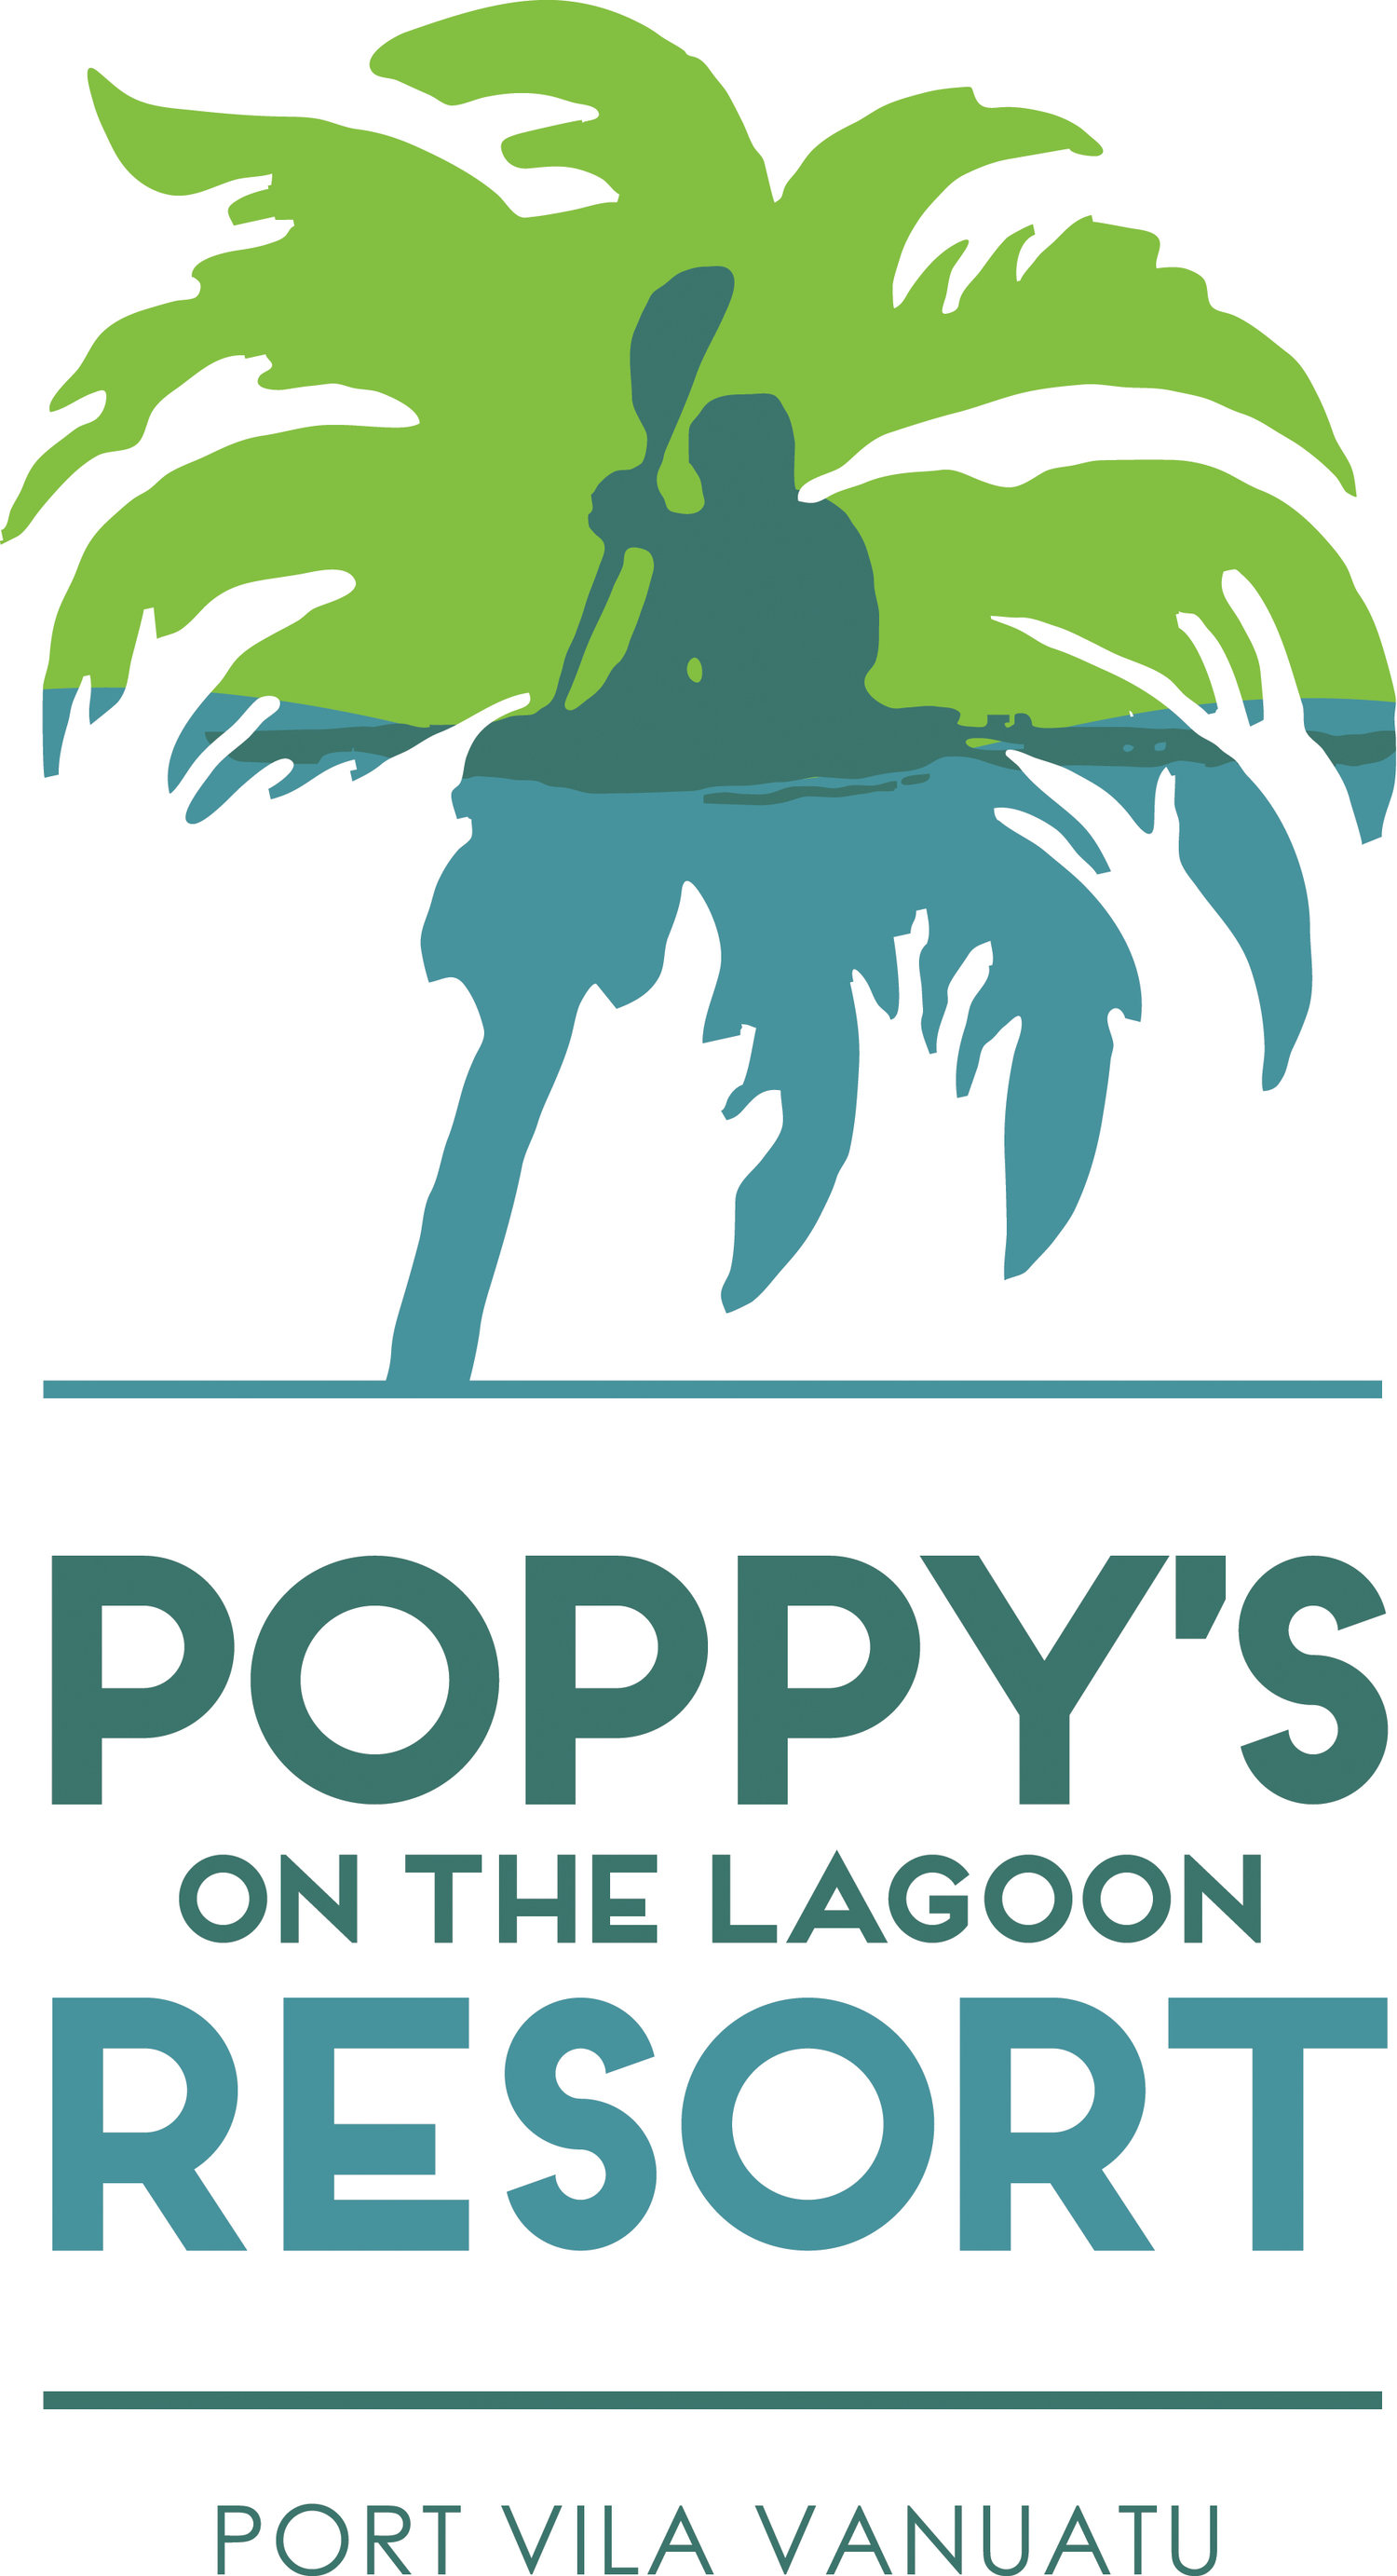 Poppys on the Lagoon